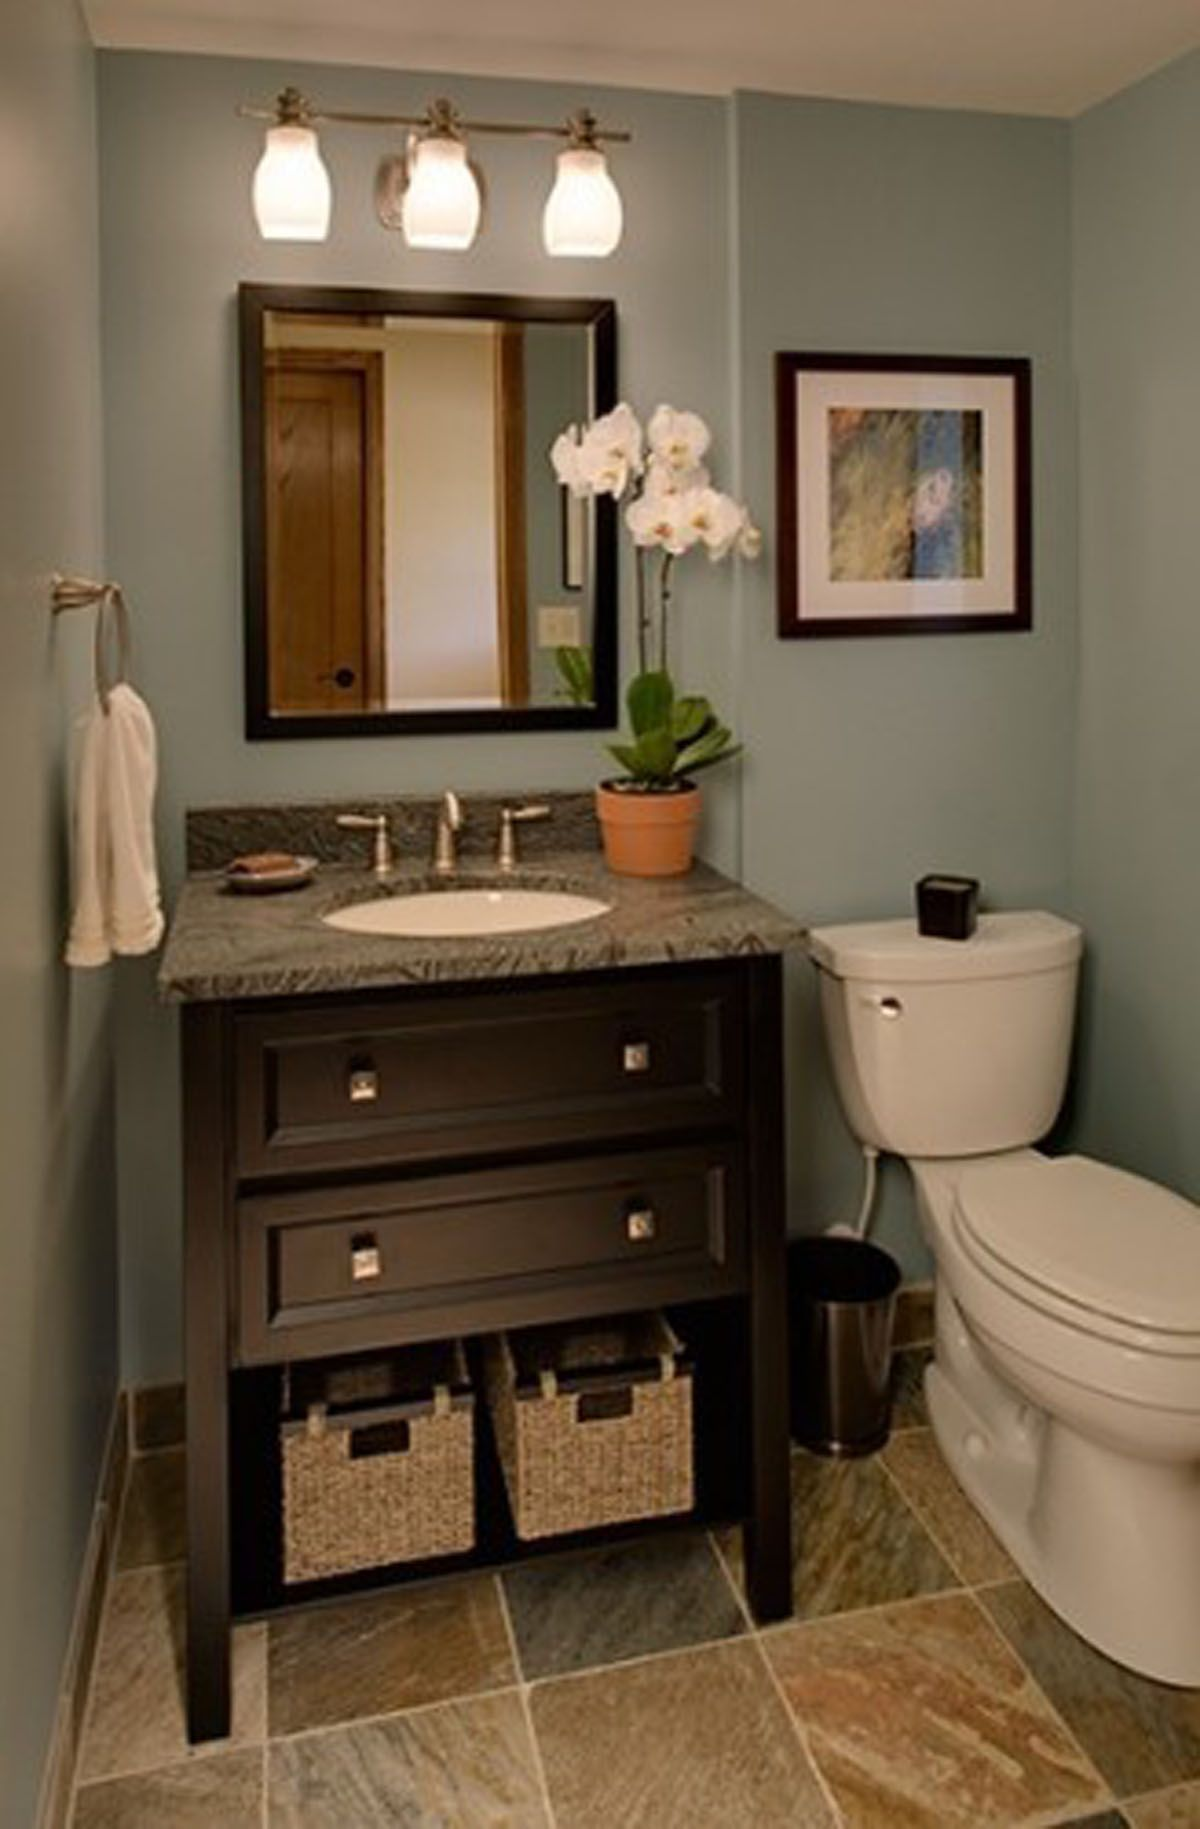 Half Bathroom Decorating Ideas Design Ideas Decors Bathrooms - What paint to use on bathroom cabinets for bathroom decor ideas